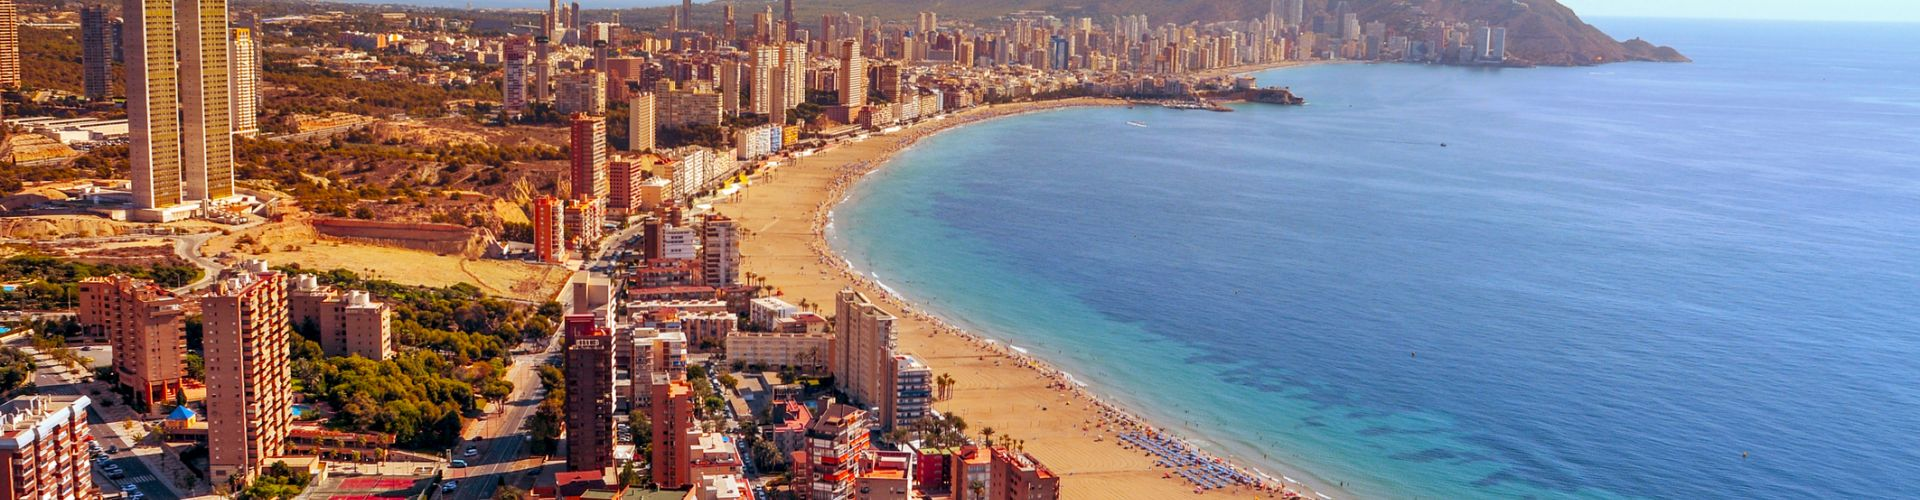 Aerial View Of Benidorm Spain 476957352 2128x1413